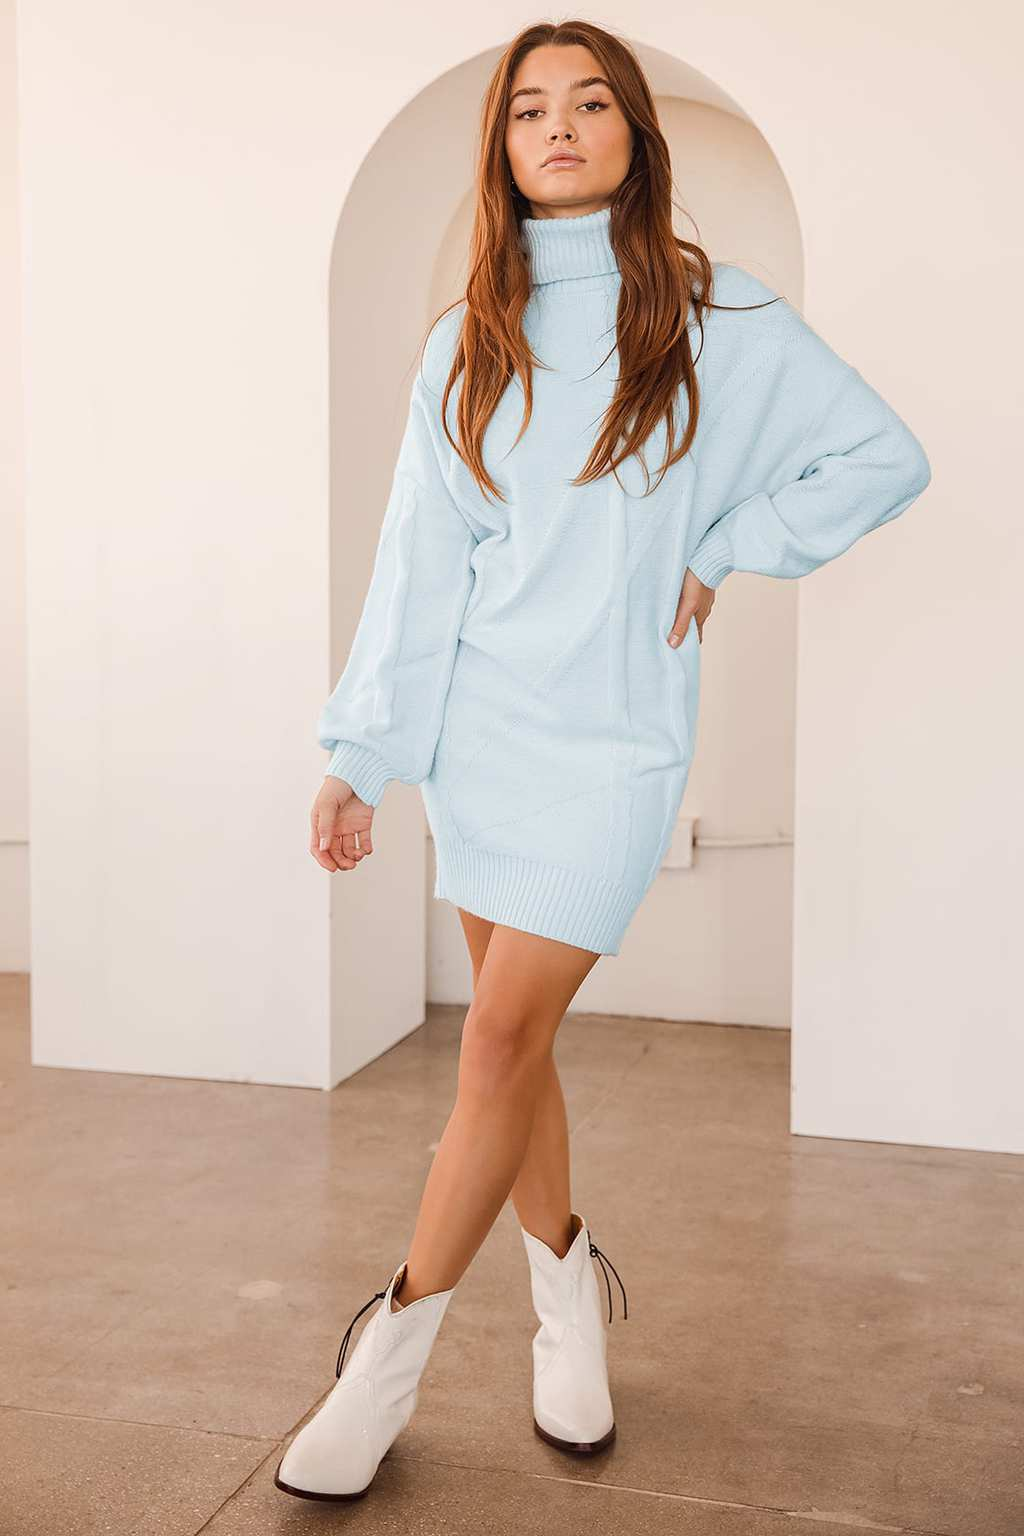 Light blue sweater dress from Lulus